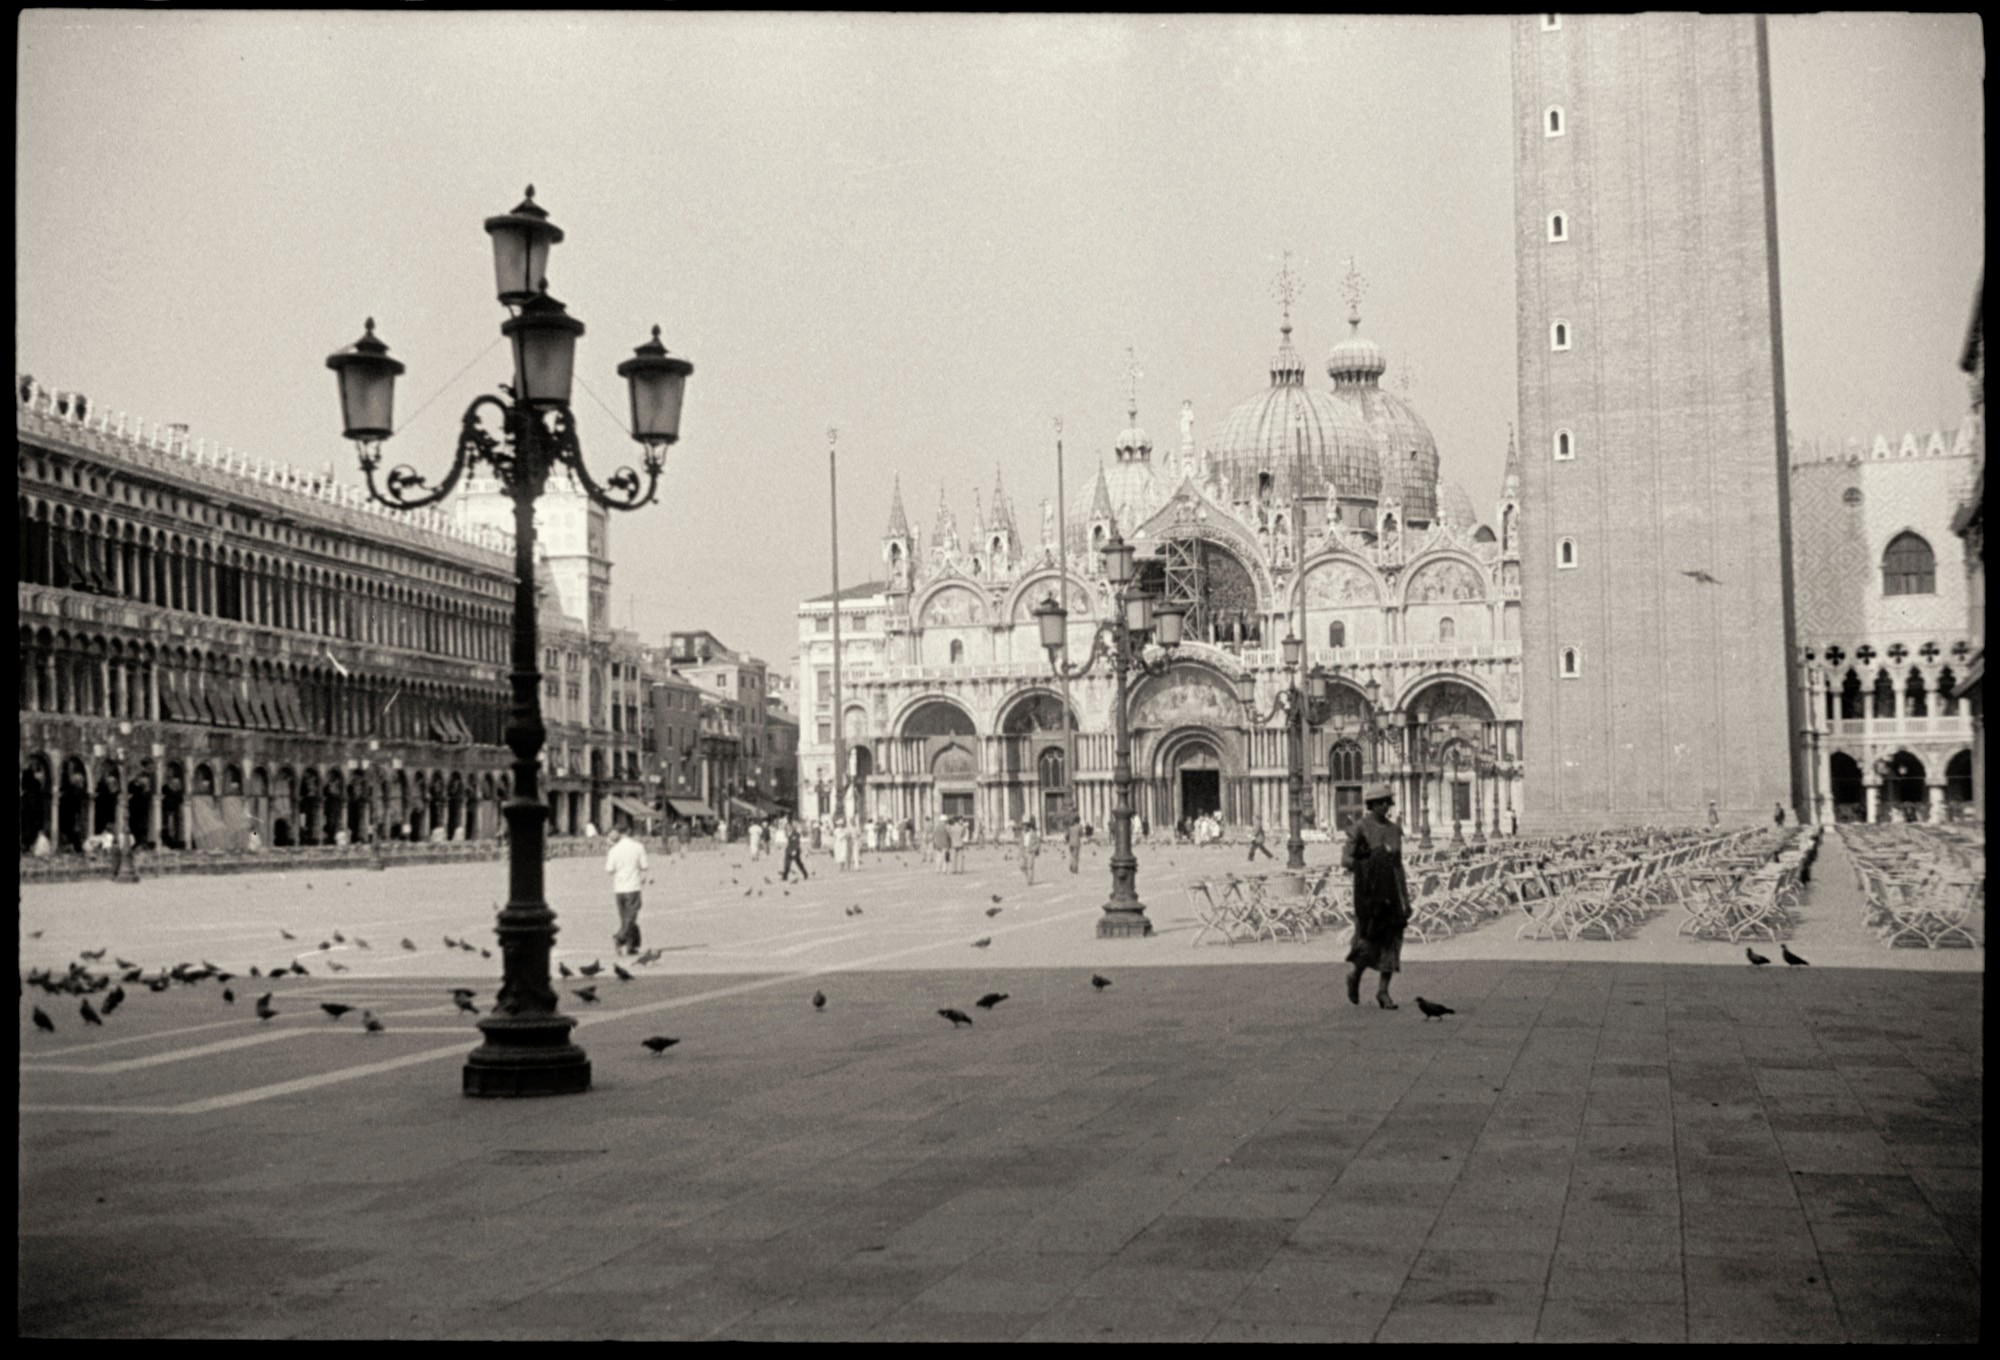 Venice by Mariano Fortuny